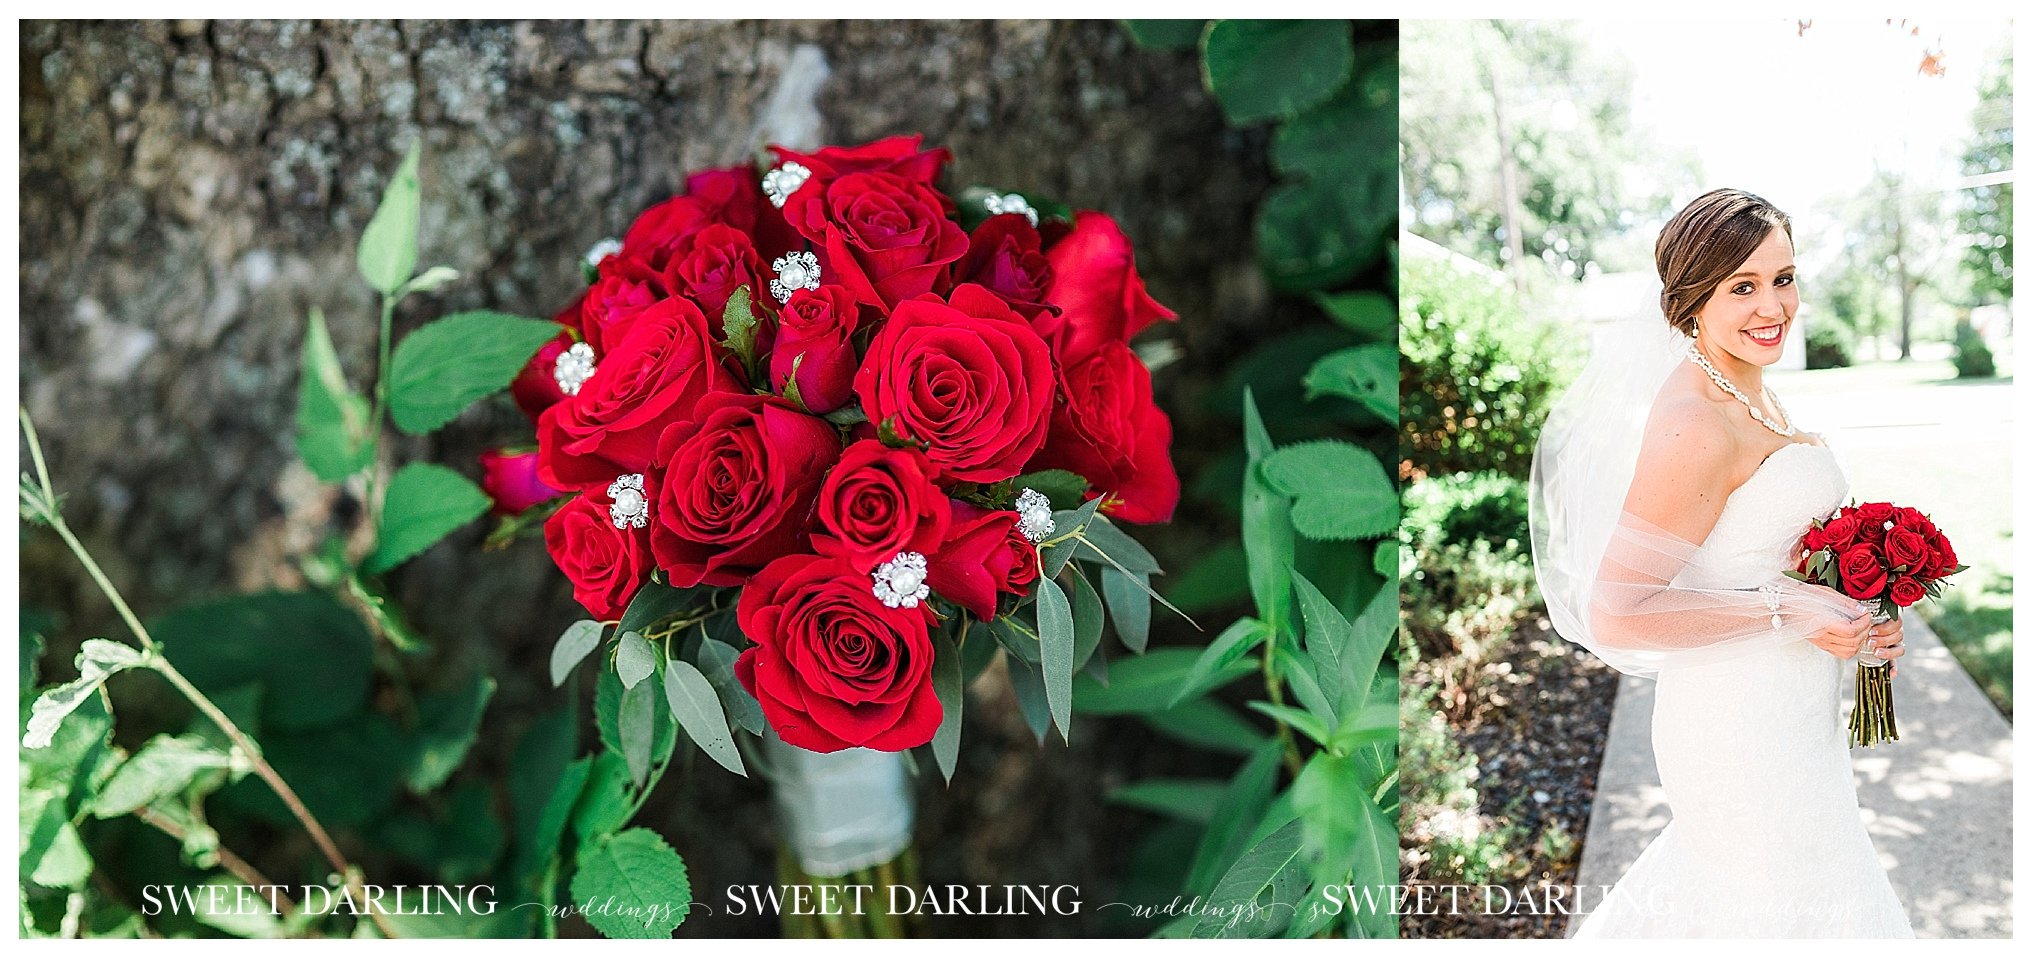 champaign-county-royal-paxton-illinois-sweet-darling-weddings-photography-red-navy-roses_1427.jpg